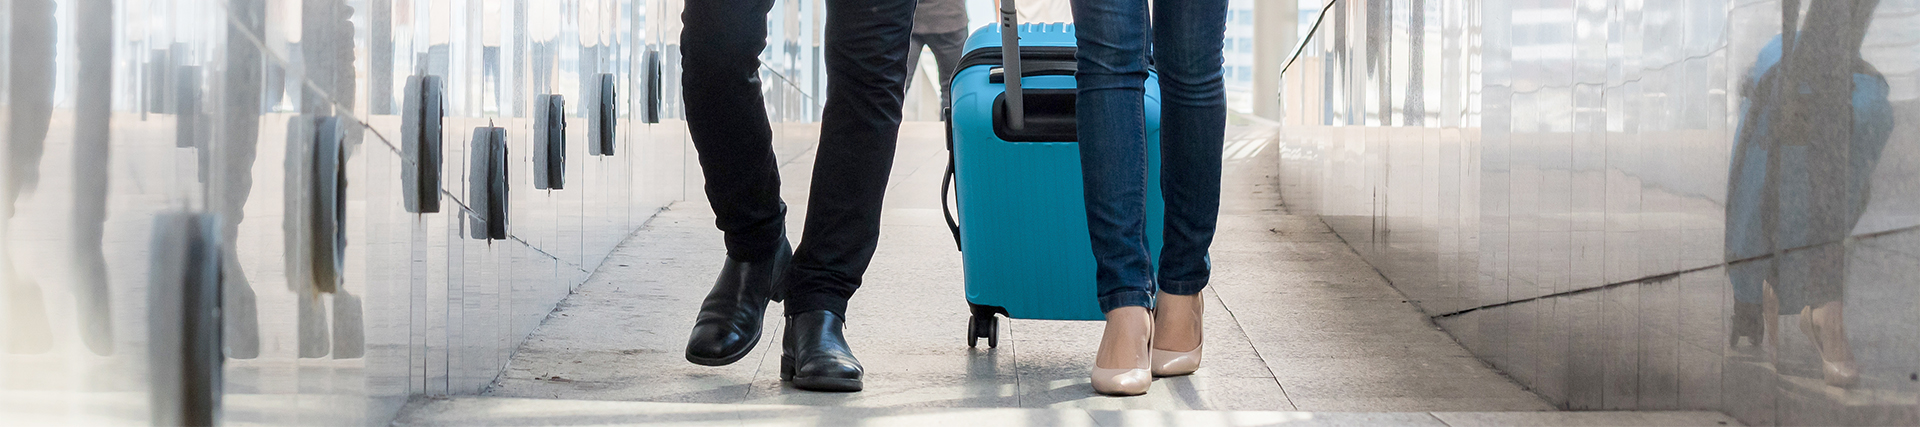 Corporate Travel Policy Best Practices